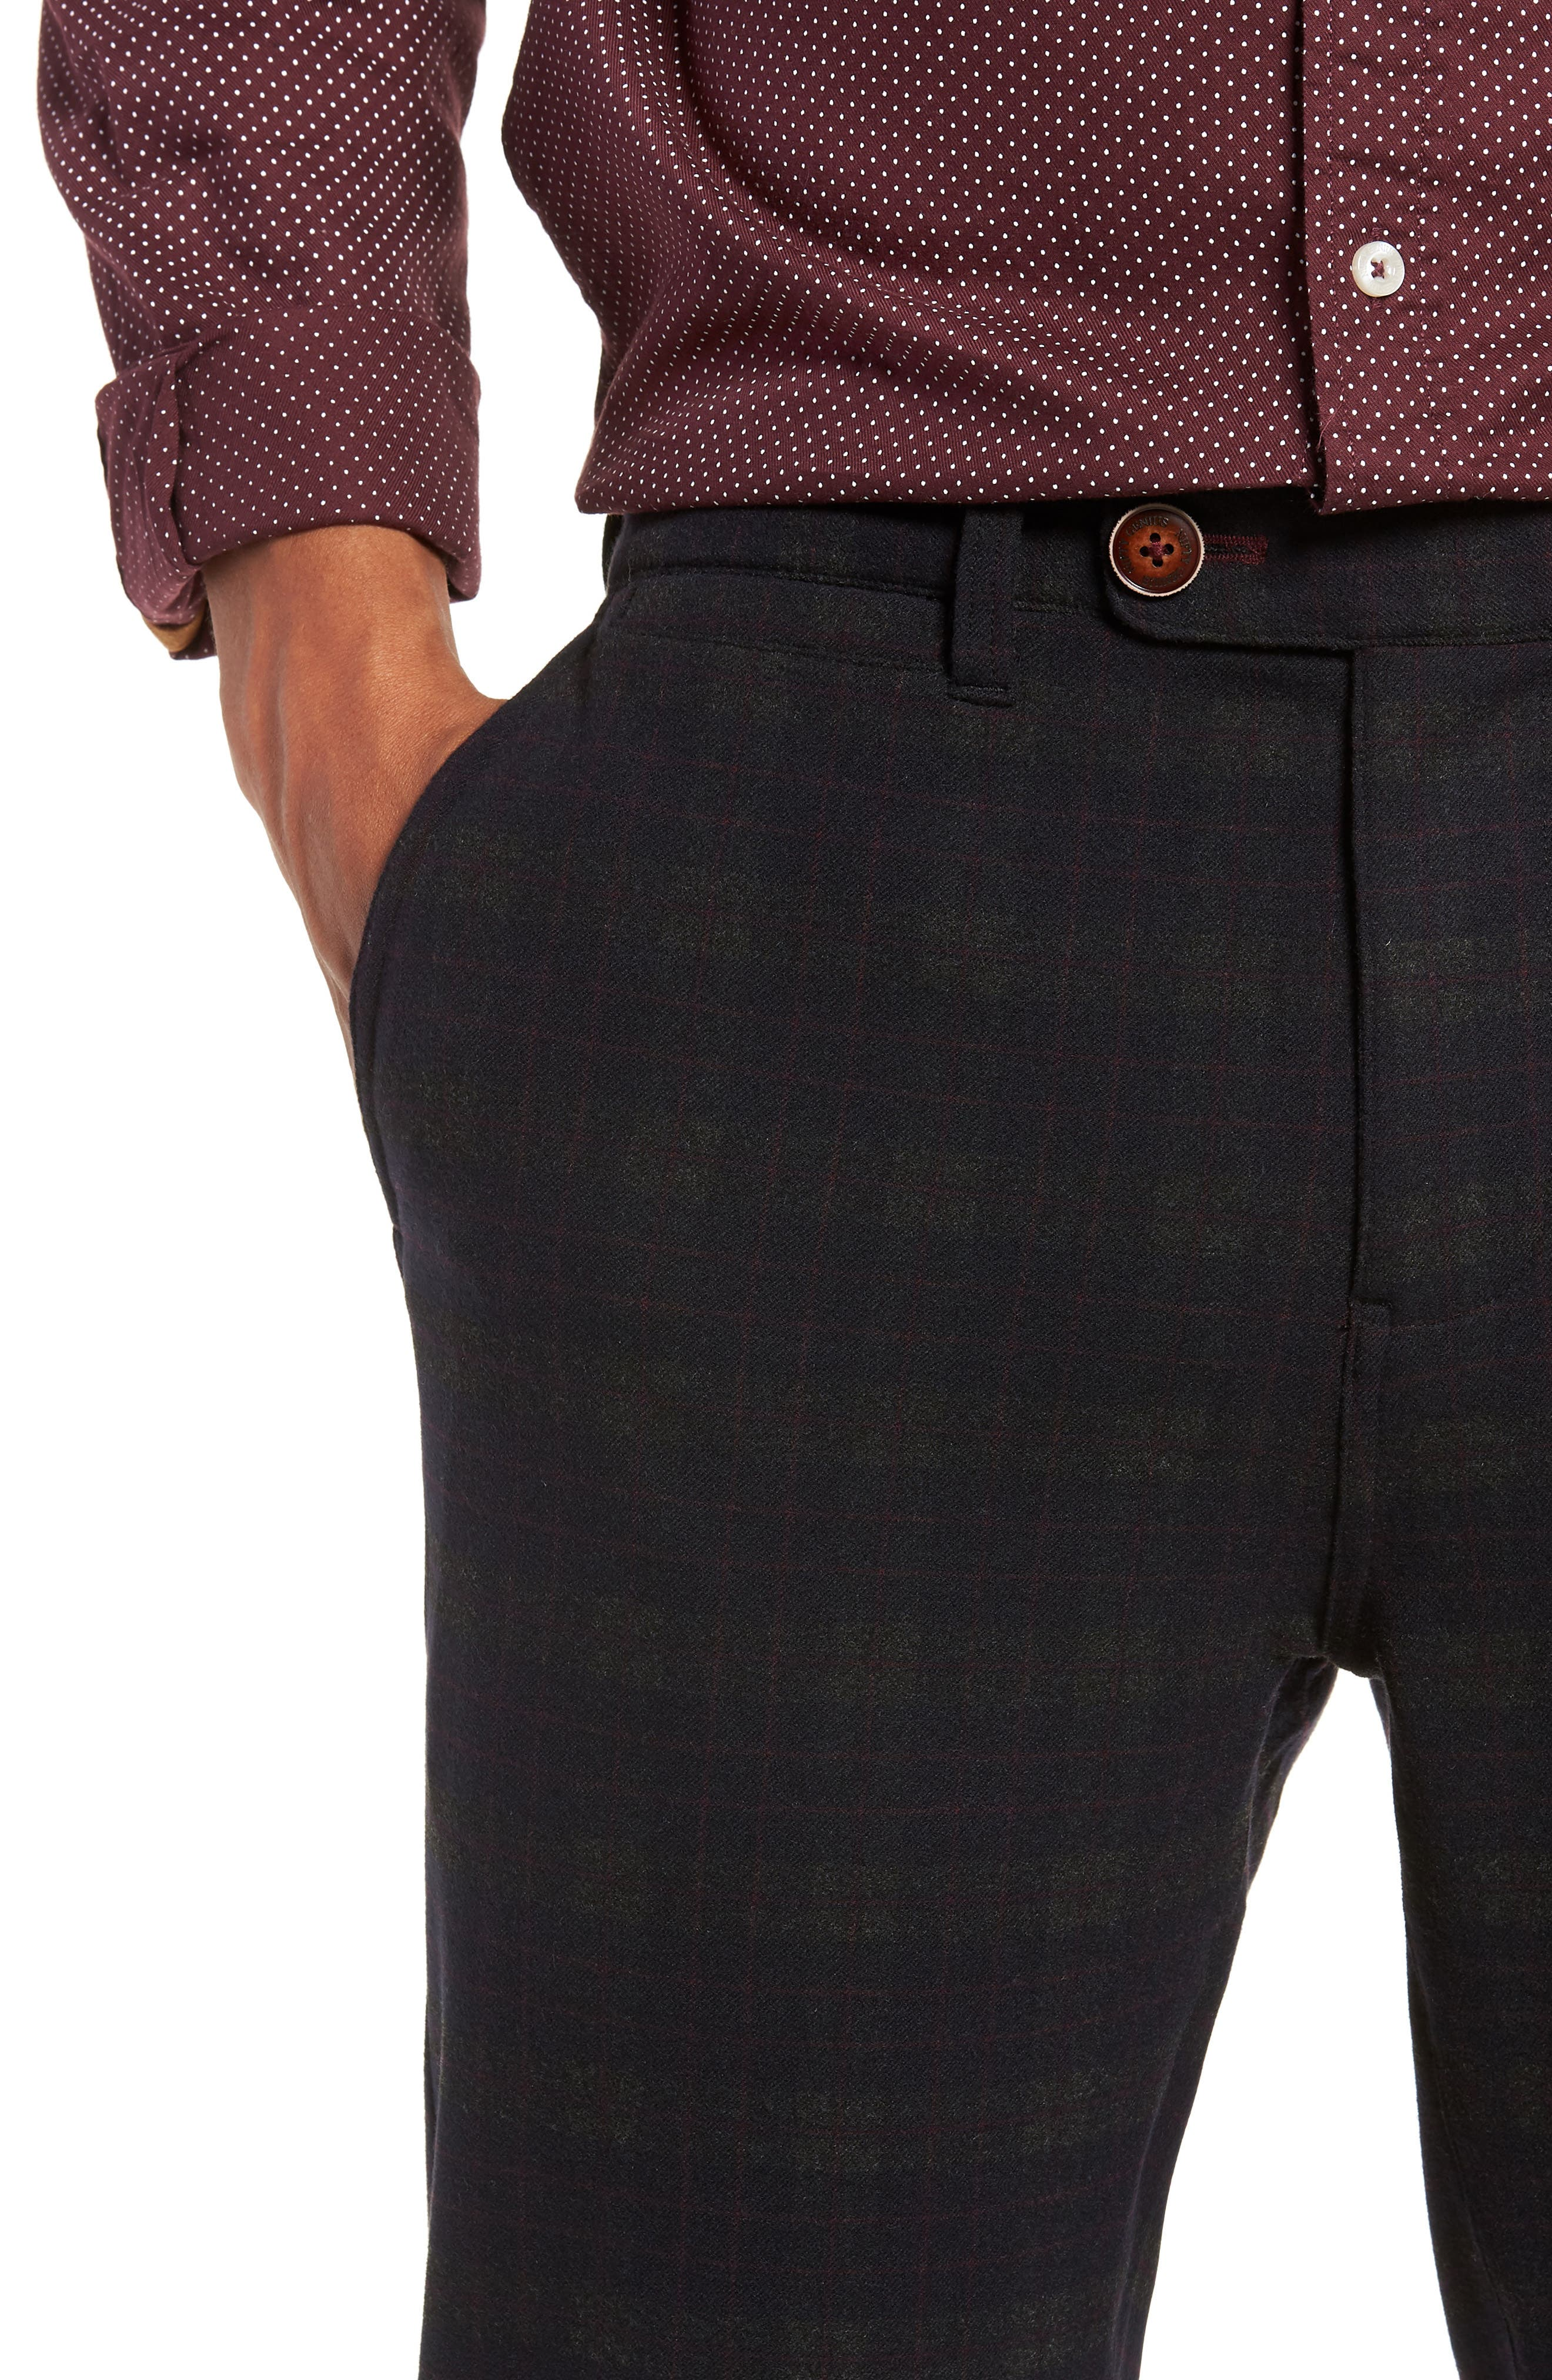 Thomas Straight Leg Chinos,                             Alternate thumbnail 4, color,                             MIDNIGHT/ RED/ CHARCOAL